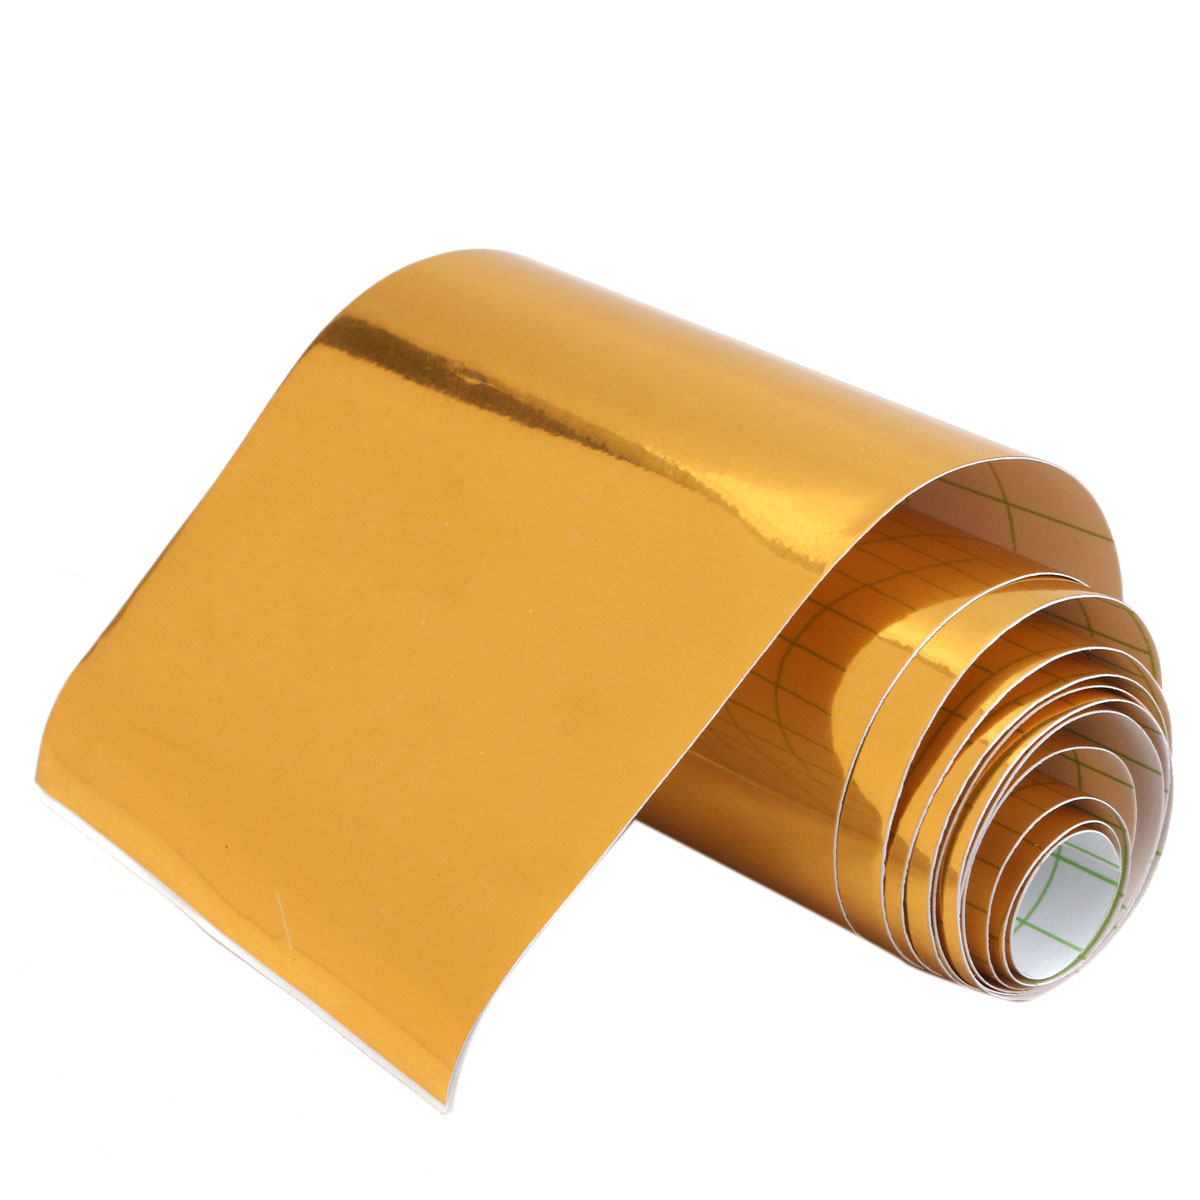 Image 4 - Gold Golden Chrome Mirror Vinyl Wrap Film Car Sticker Decal Bubble Free Air Release DIY Car Styling 10*150cm-in Car Stickers from Automobiles & Motorcycles